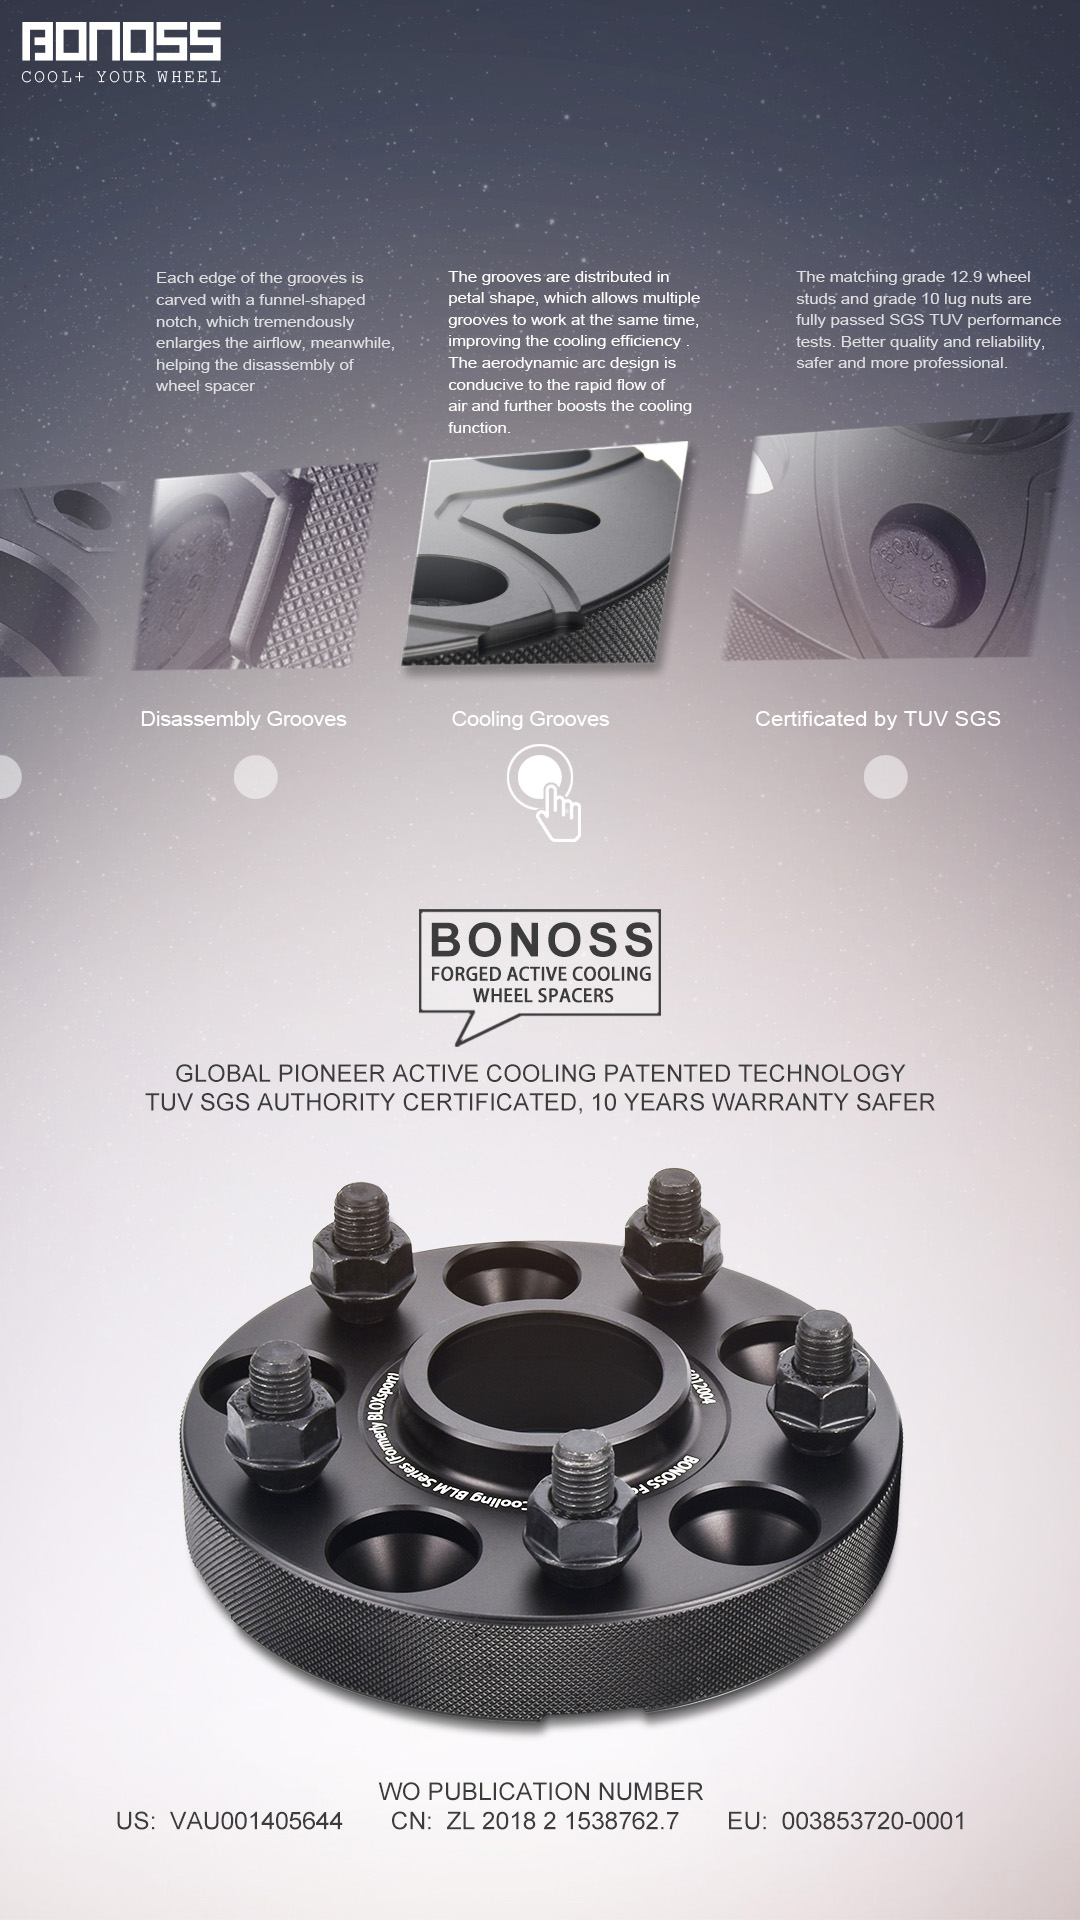 What's the Benefits of Wheel Spacers Before and After Forged Active Cooling Wheel Spacers